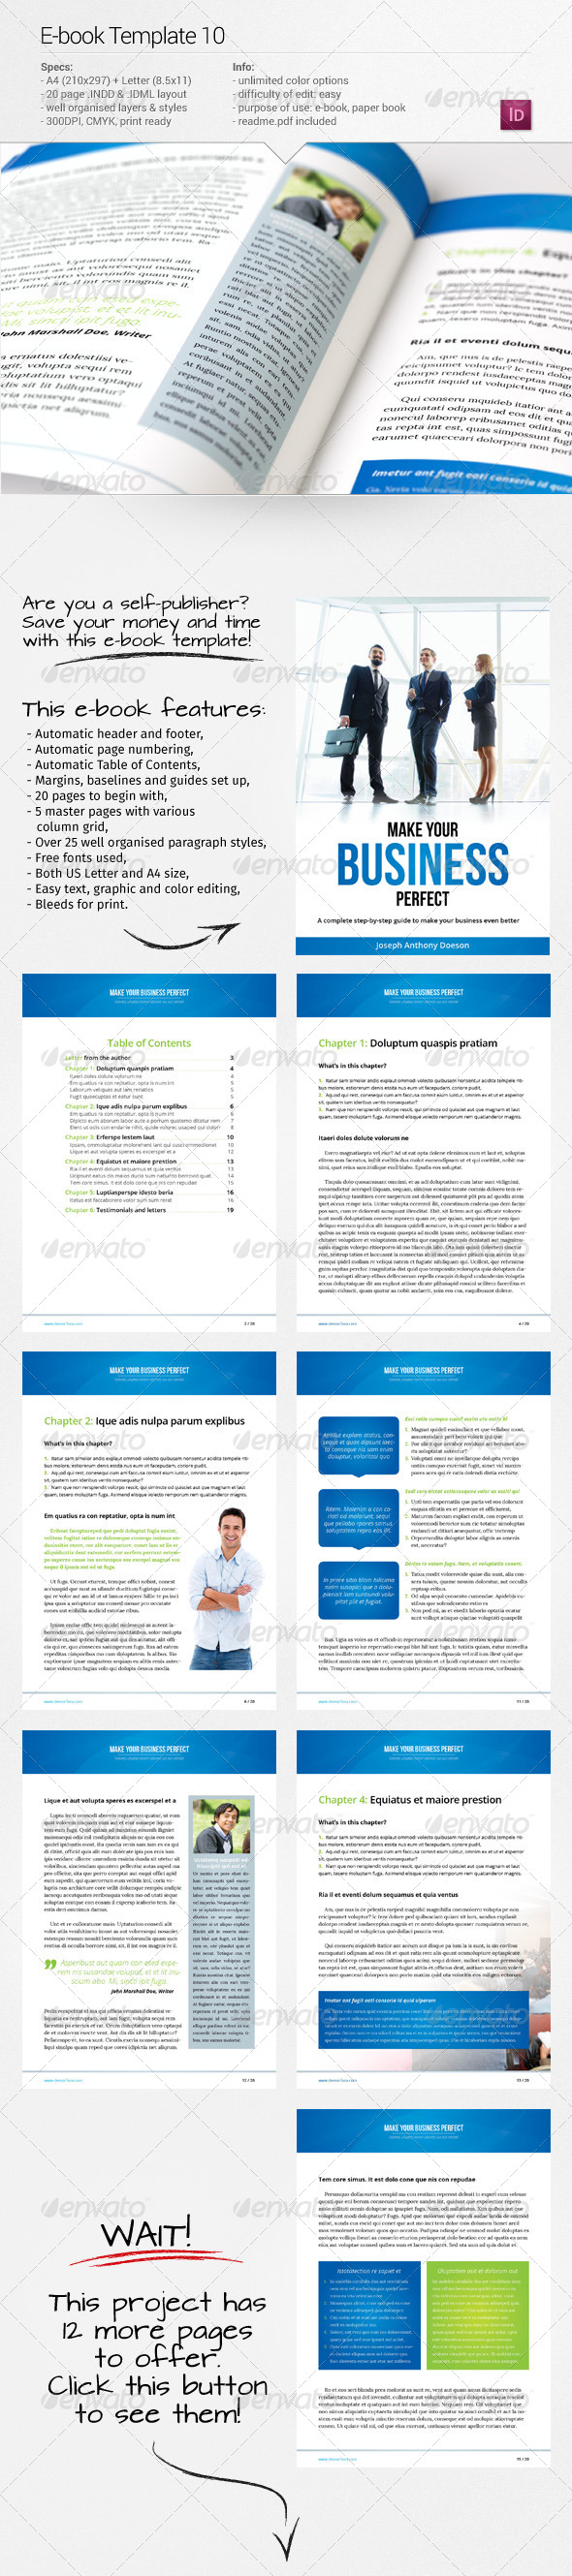 GraphicRiver E-book Template 10 7740644